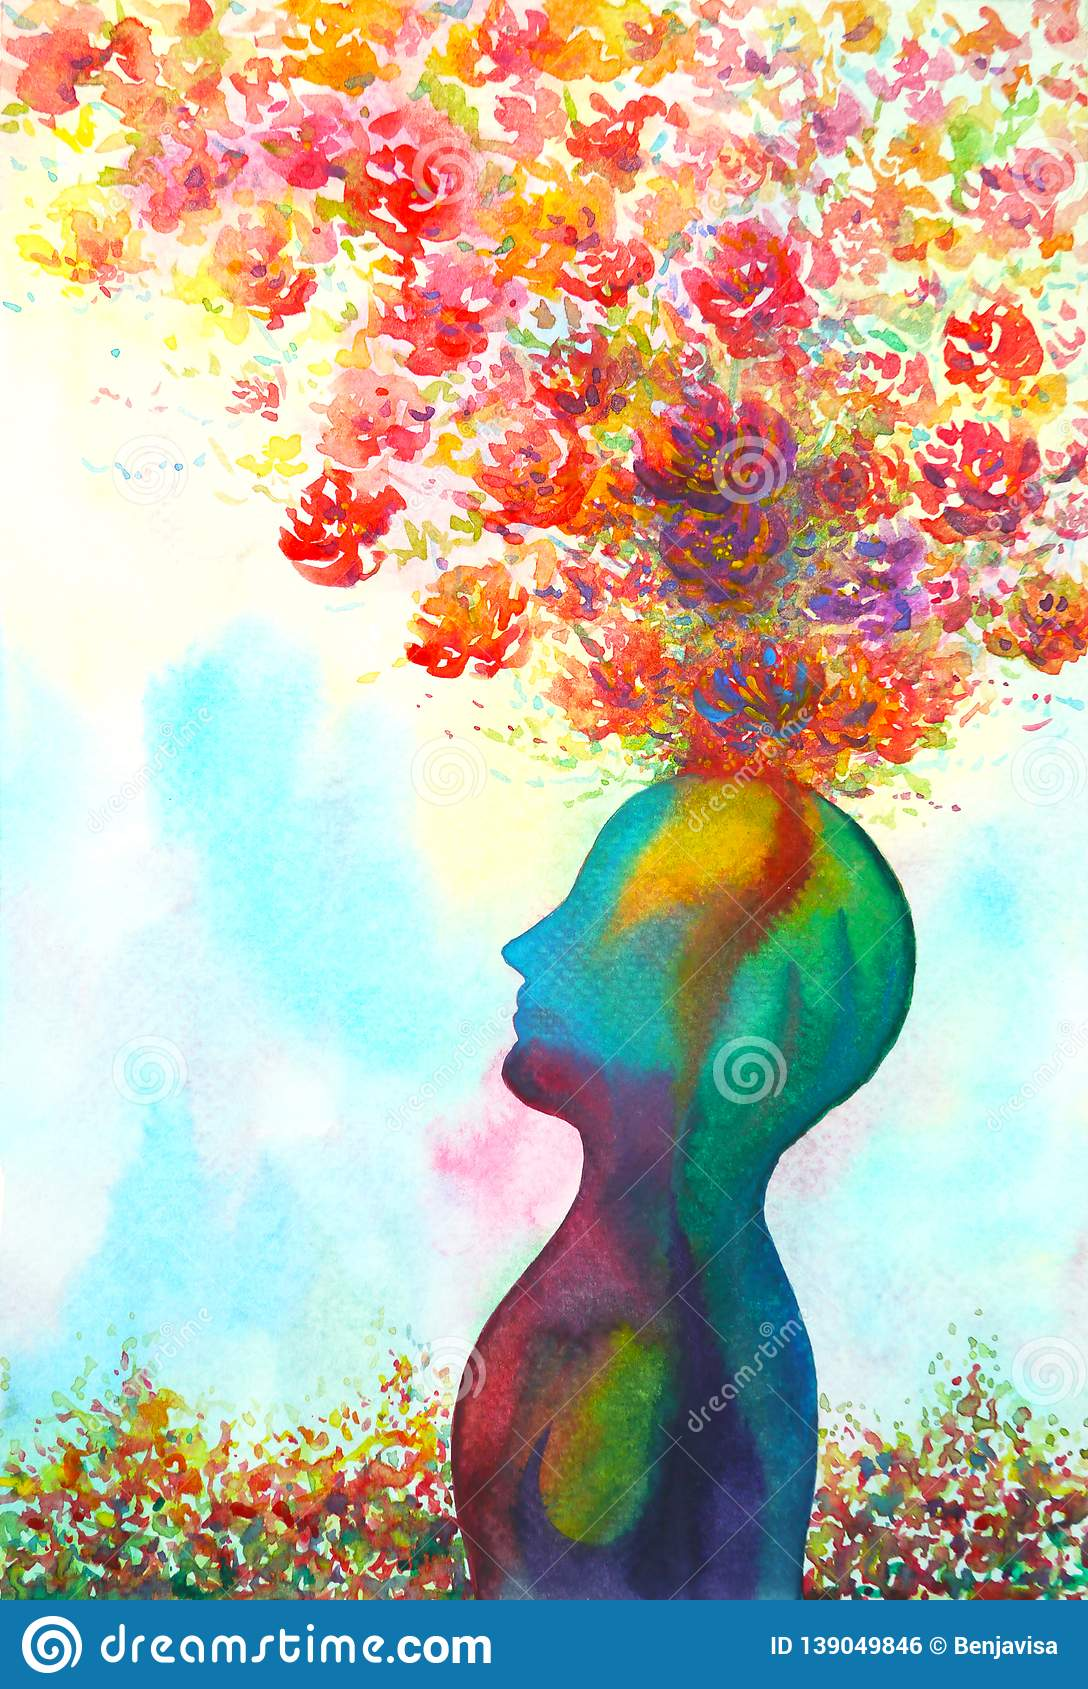 Human Head Chakra Power Inspiration Abstract Thinking World Universe Inside Your Mind Watercolor Painting Stock Illustration Illustration Of Healing Fantasy 139049846